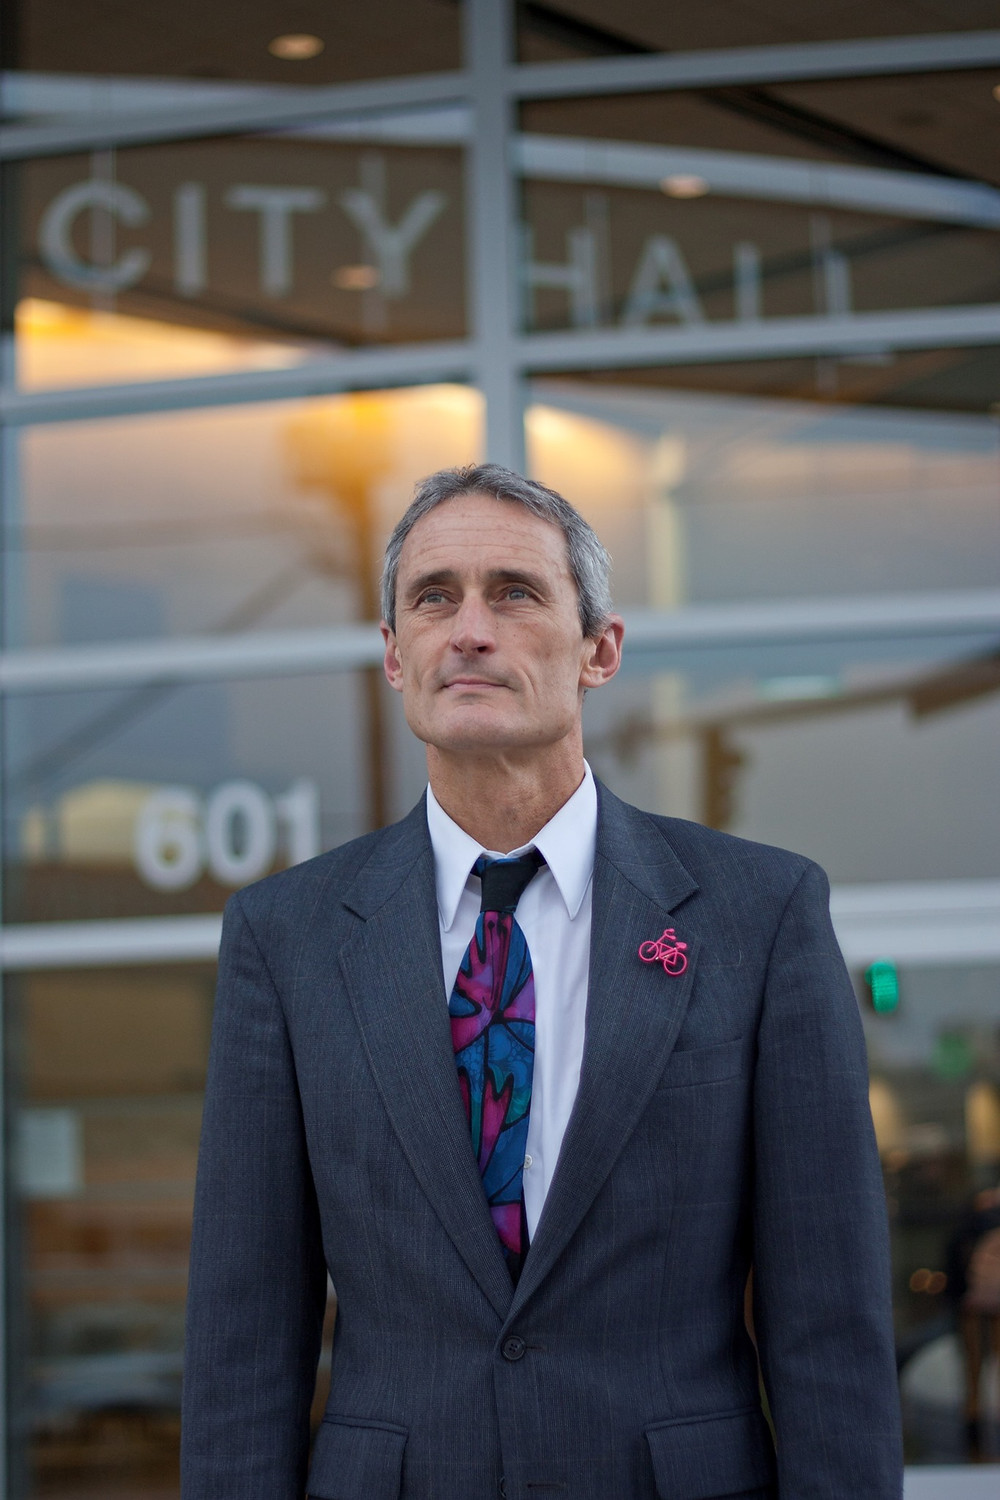 Steve Hall, retired city manager, stands in front of City Hall in Olympia Washington, wearing a suit and colorful stained-glass-like tie.